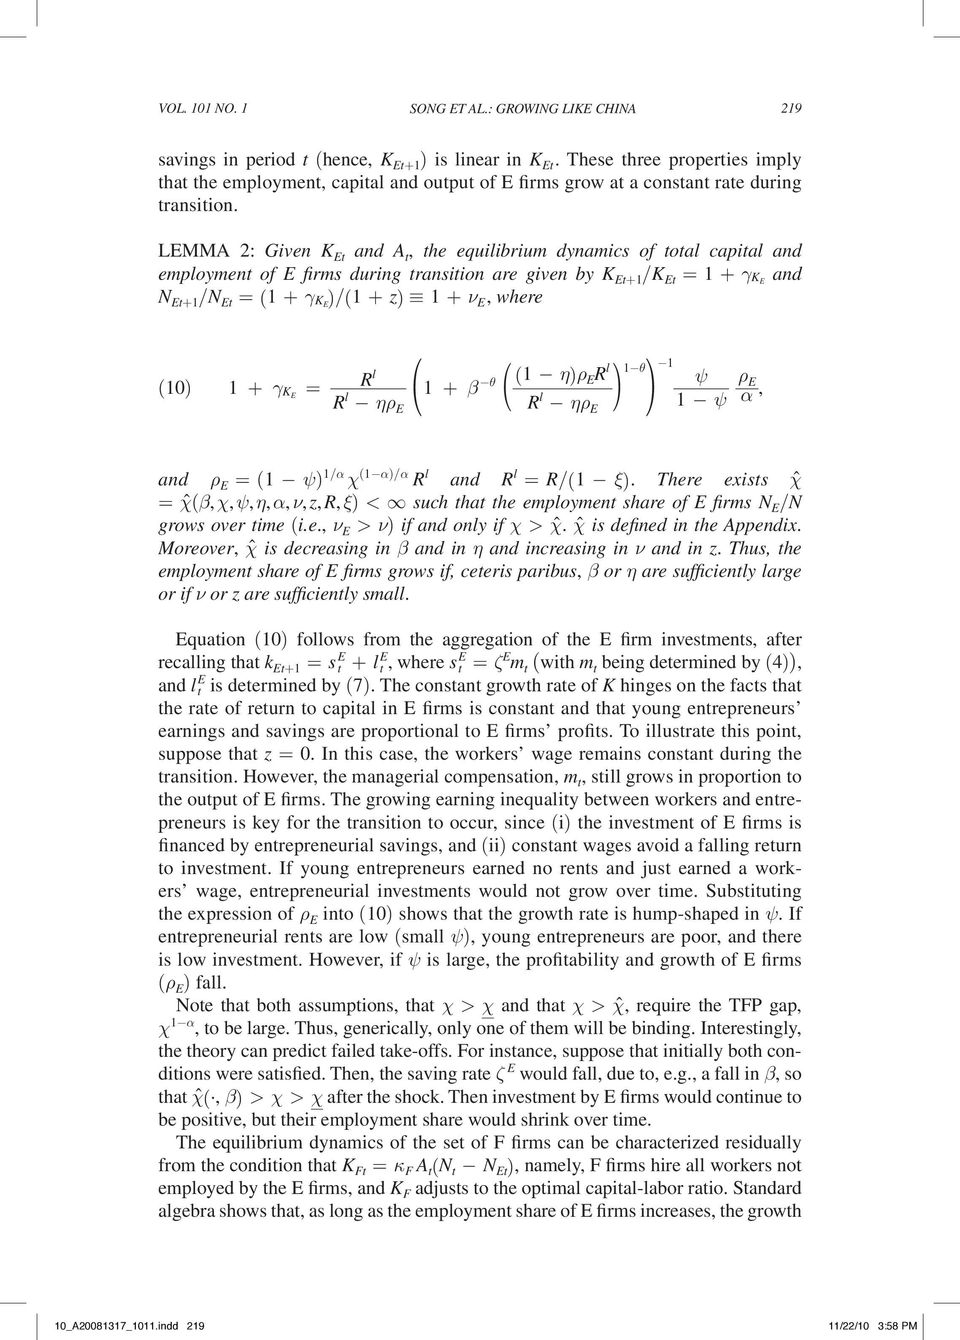 Lemma 2: Given K Et and A t, the equilibrium dynamics of total capital and employment of E firms during transition are given by K Et+1 / K Et = 1 + γ K E and N Et+1 / N Et = (1 + γ K E ) / (1 + z) 1